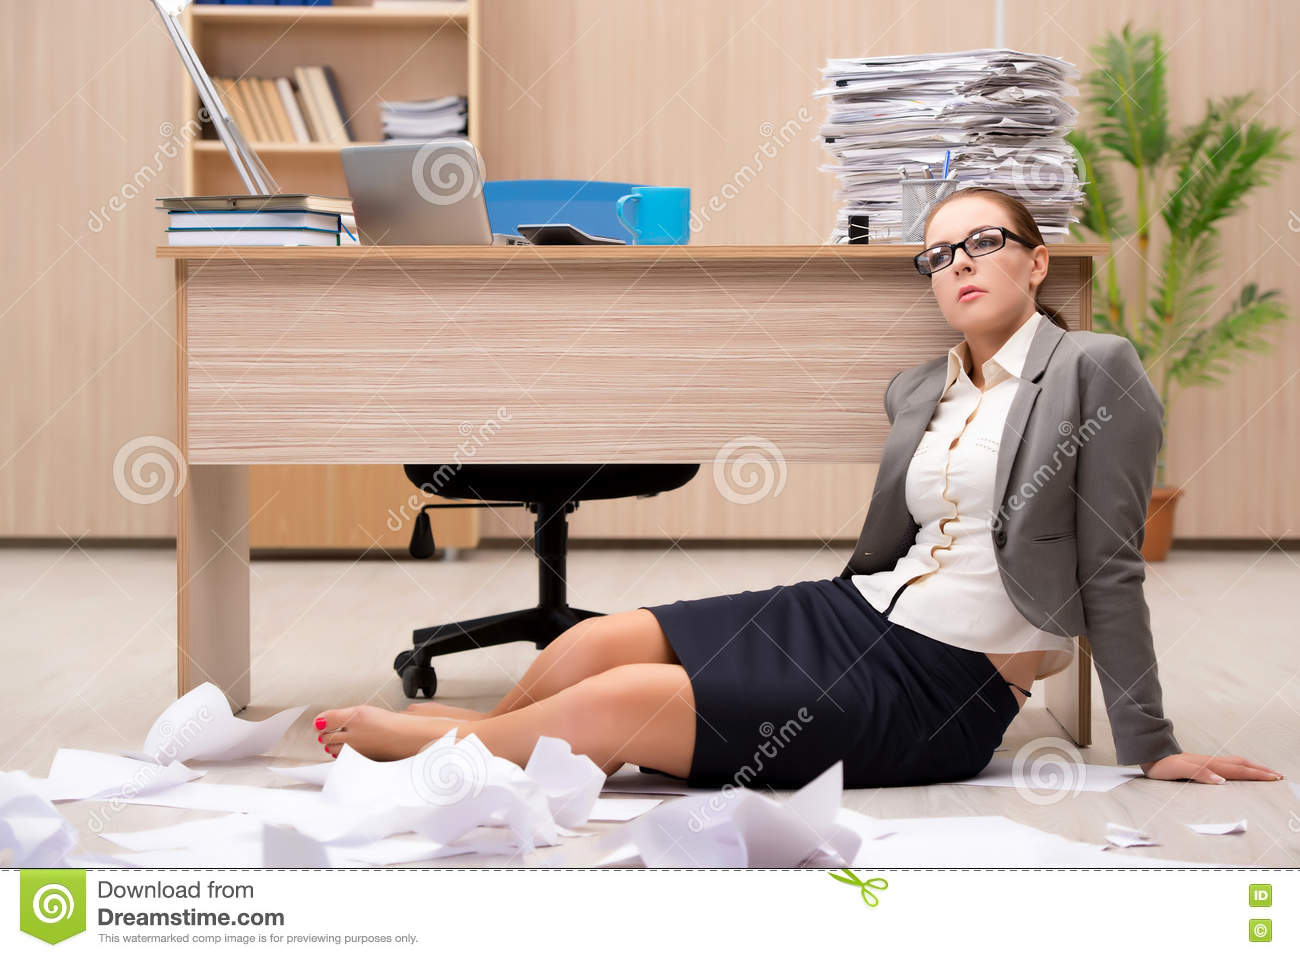 the businessw under stress from too much work in the office the businessw under stress from too much work in the office